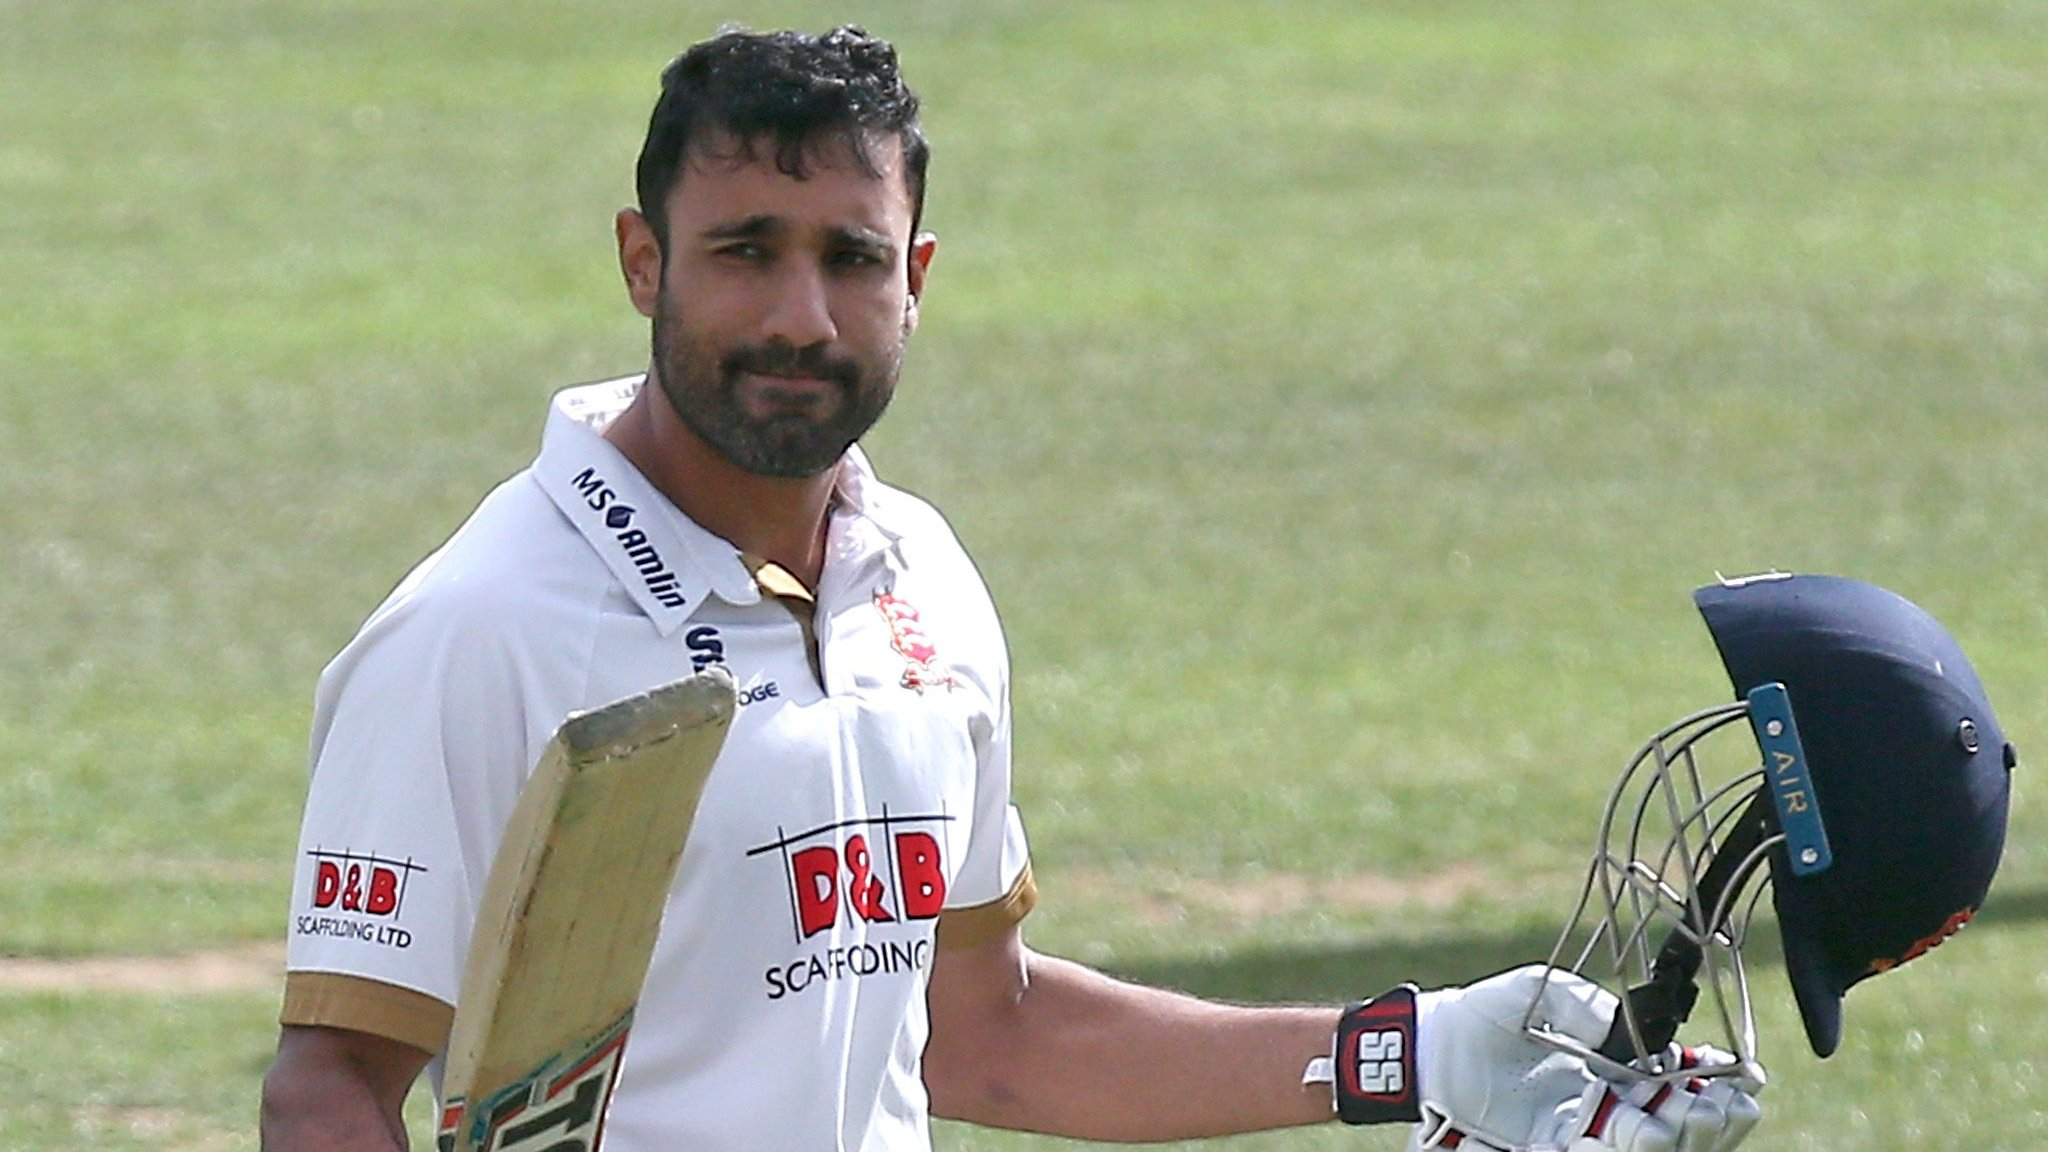 County Championship: Worcestershire on brink after Ravi Bopara century